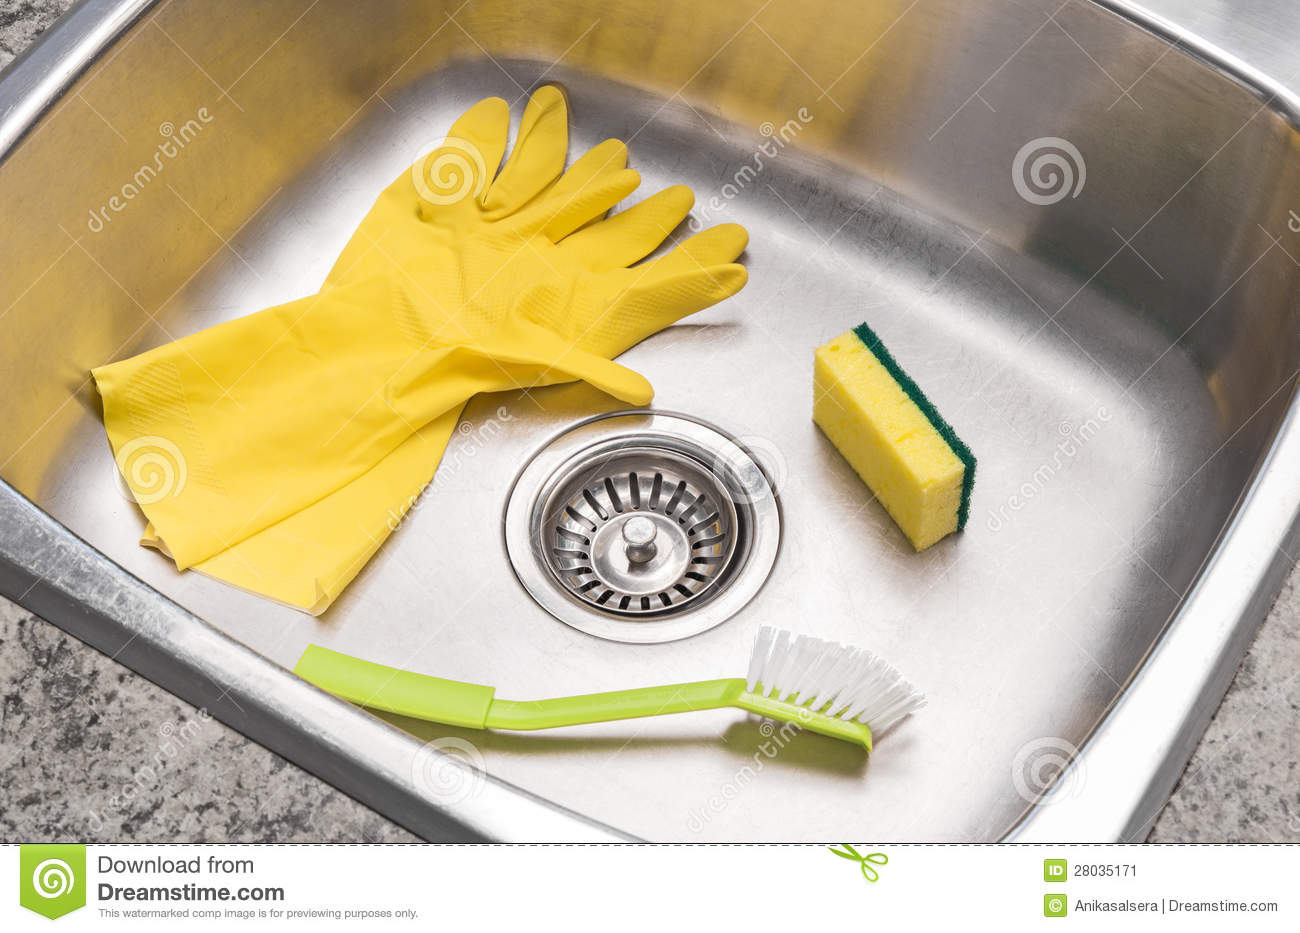 Gloves, Sponge And Brush In A Clean Kitchen Sink Stock Image - Image ...